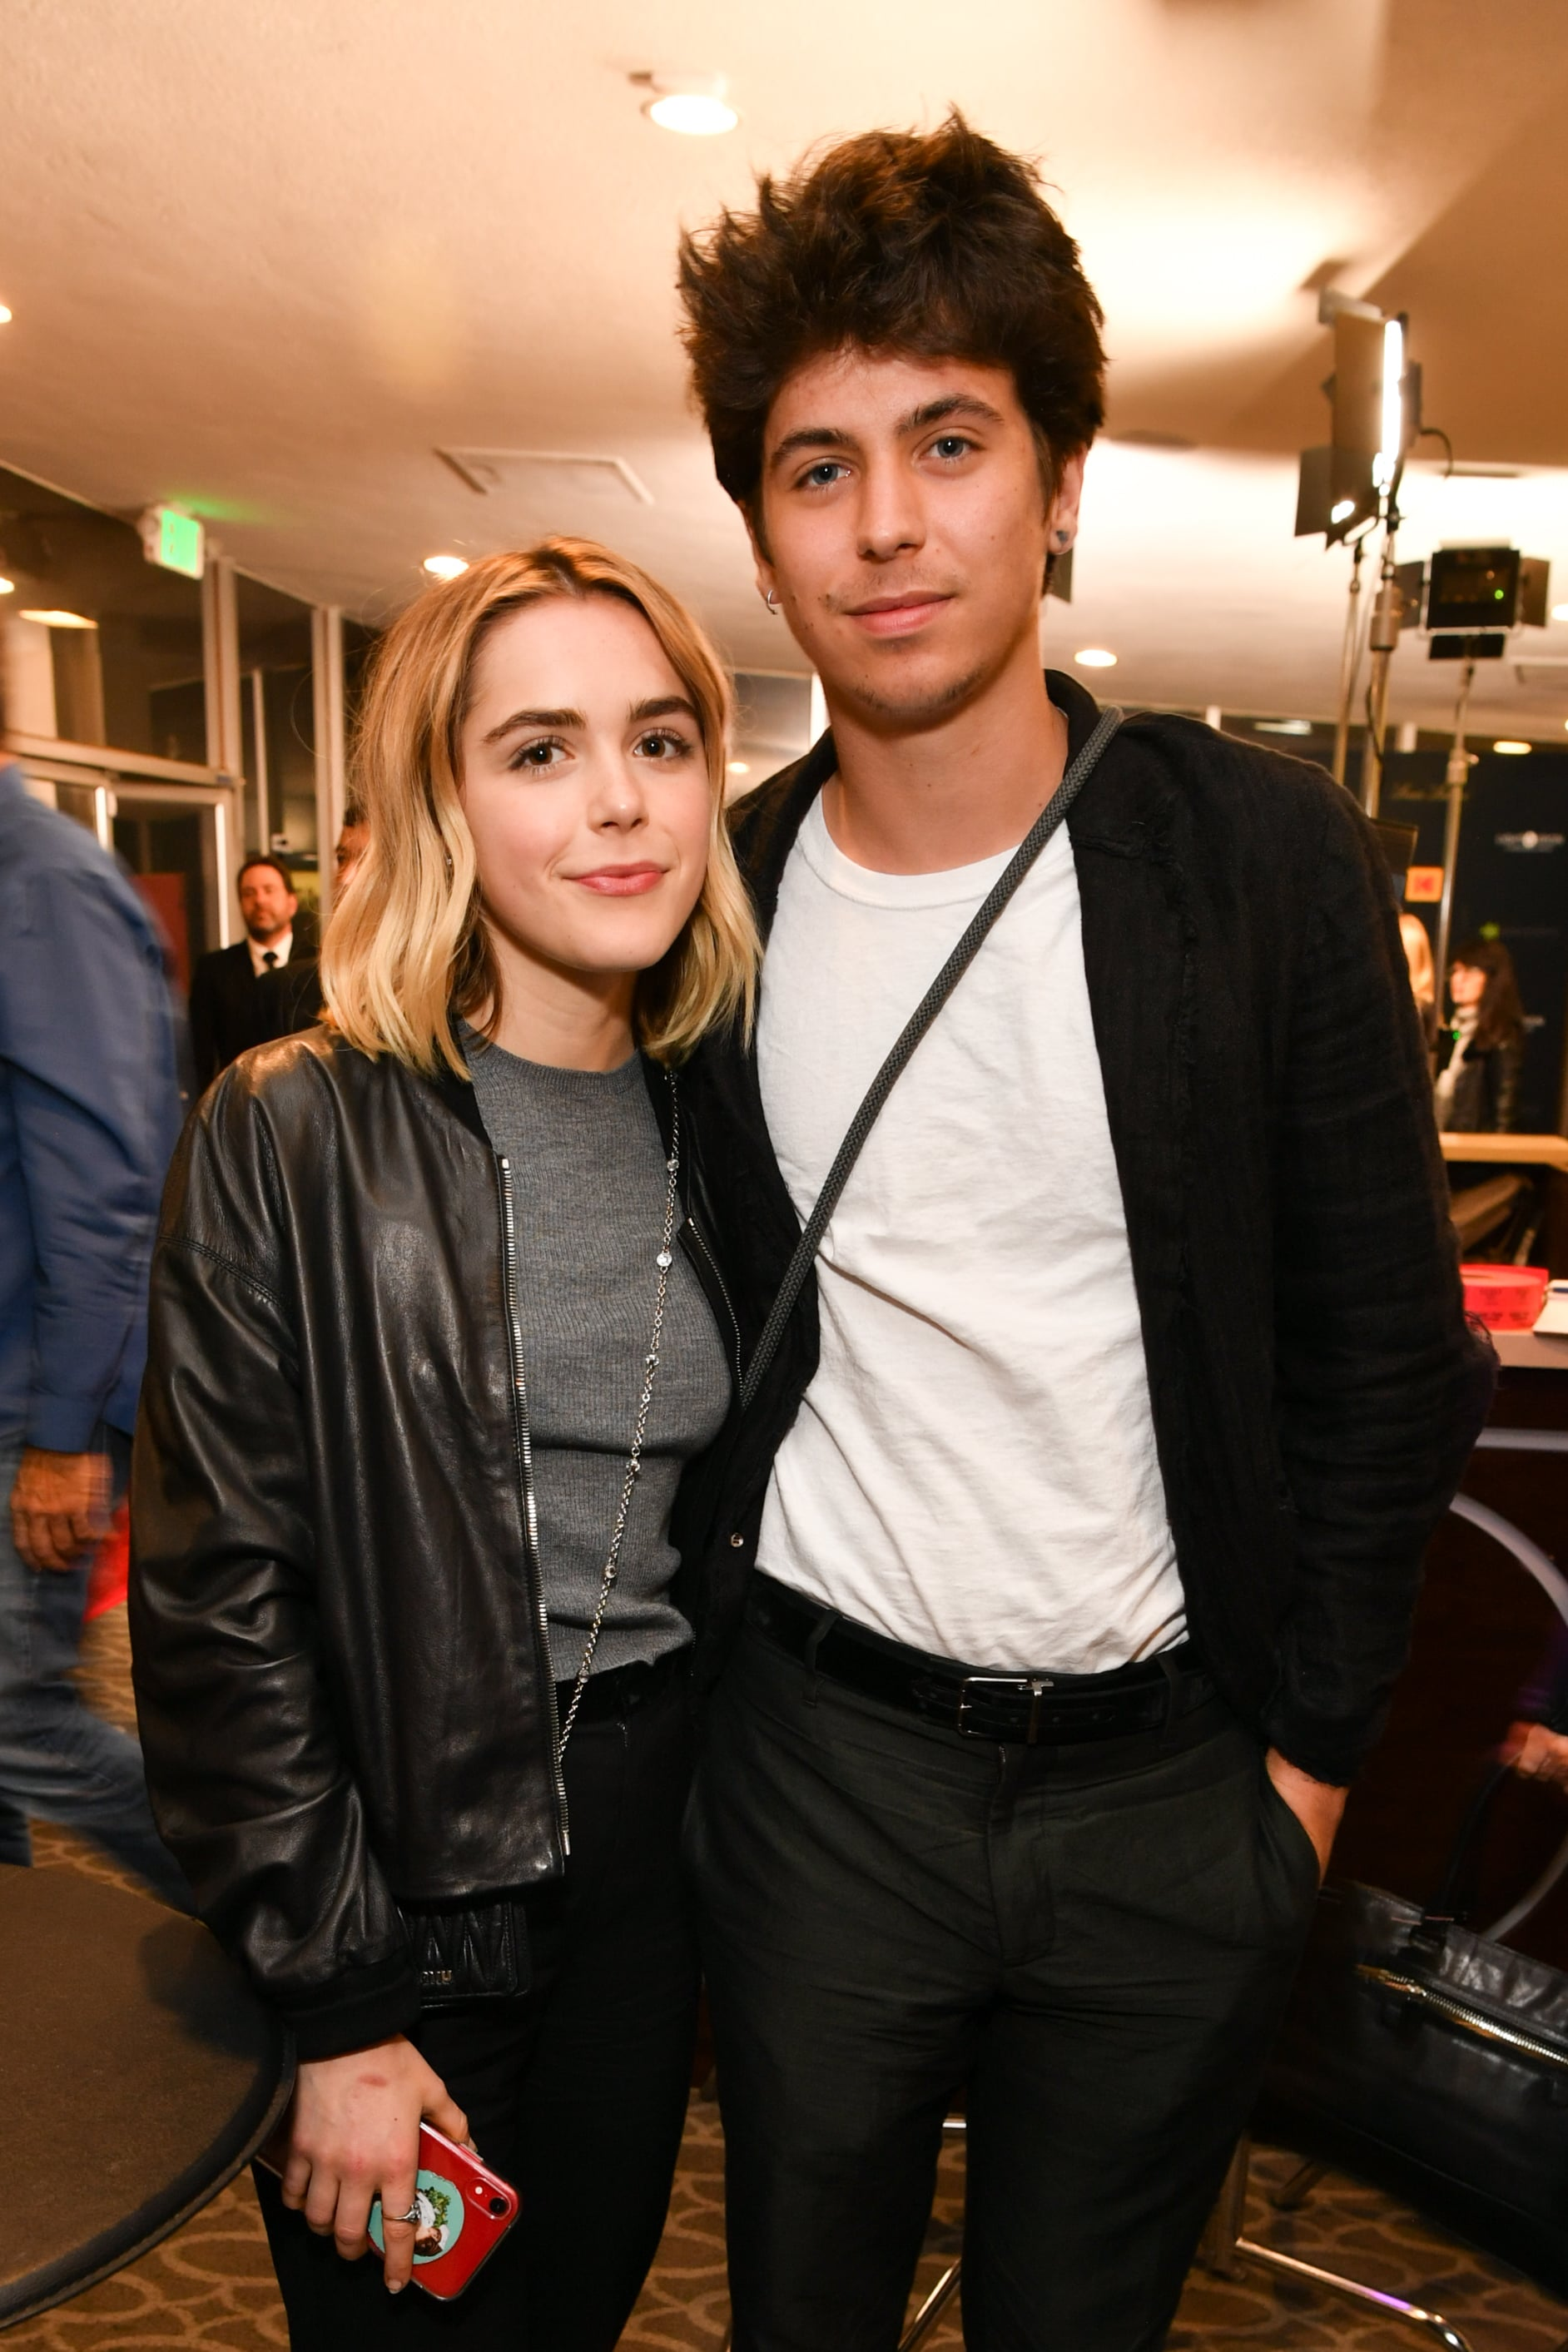 LOS ANGELES, CALIFORNIA - APRIL 09: Kiernan Shipka and Charlie Oldman attend the Zeitgeist Films and Kino Lorber present Los Angeles Premiere of